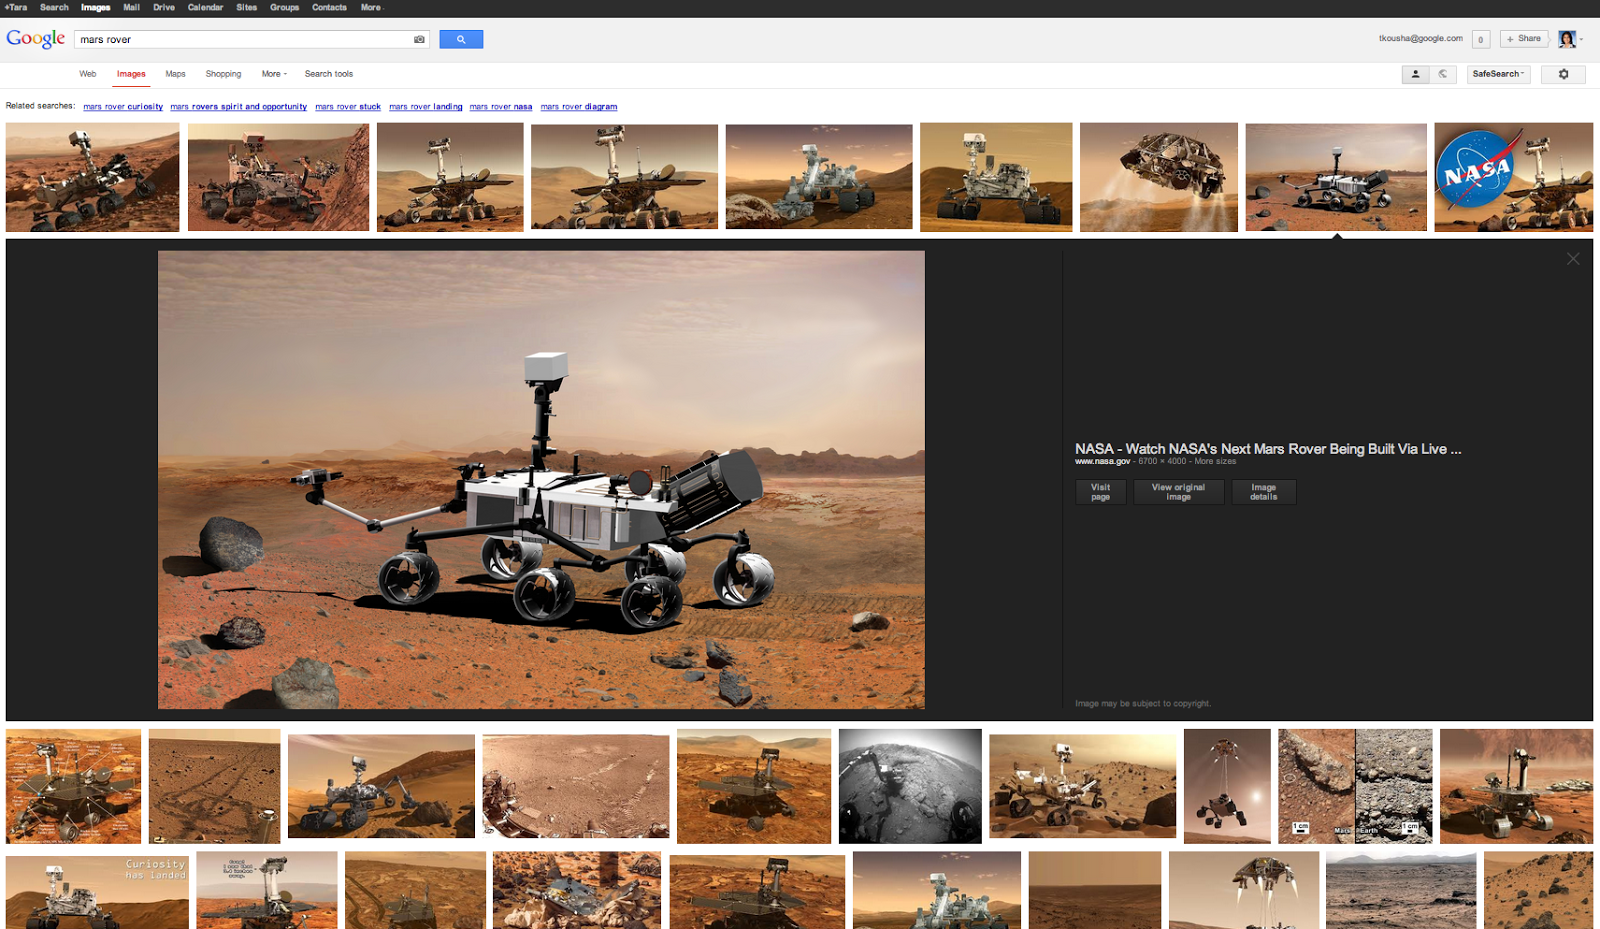 New Google Images interface